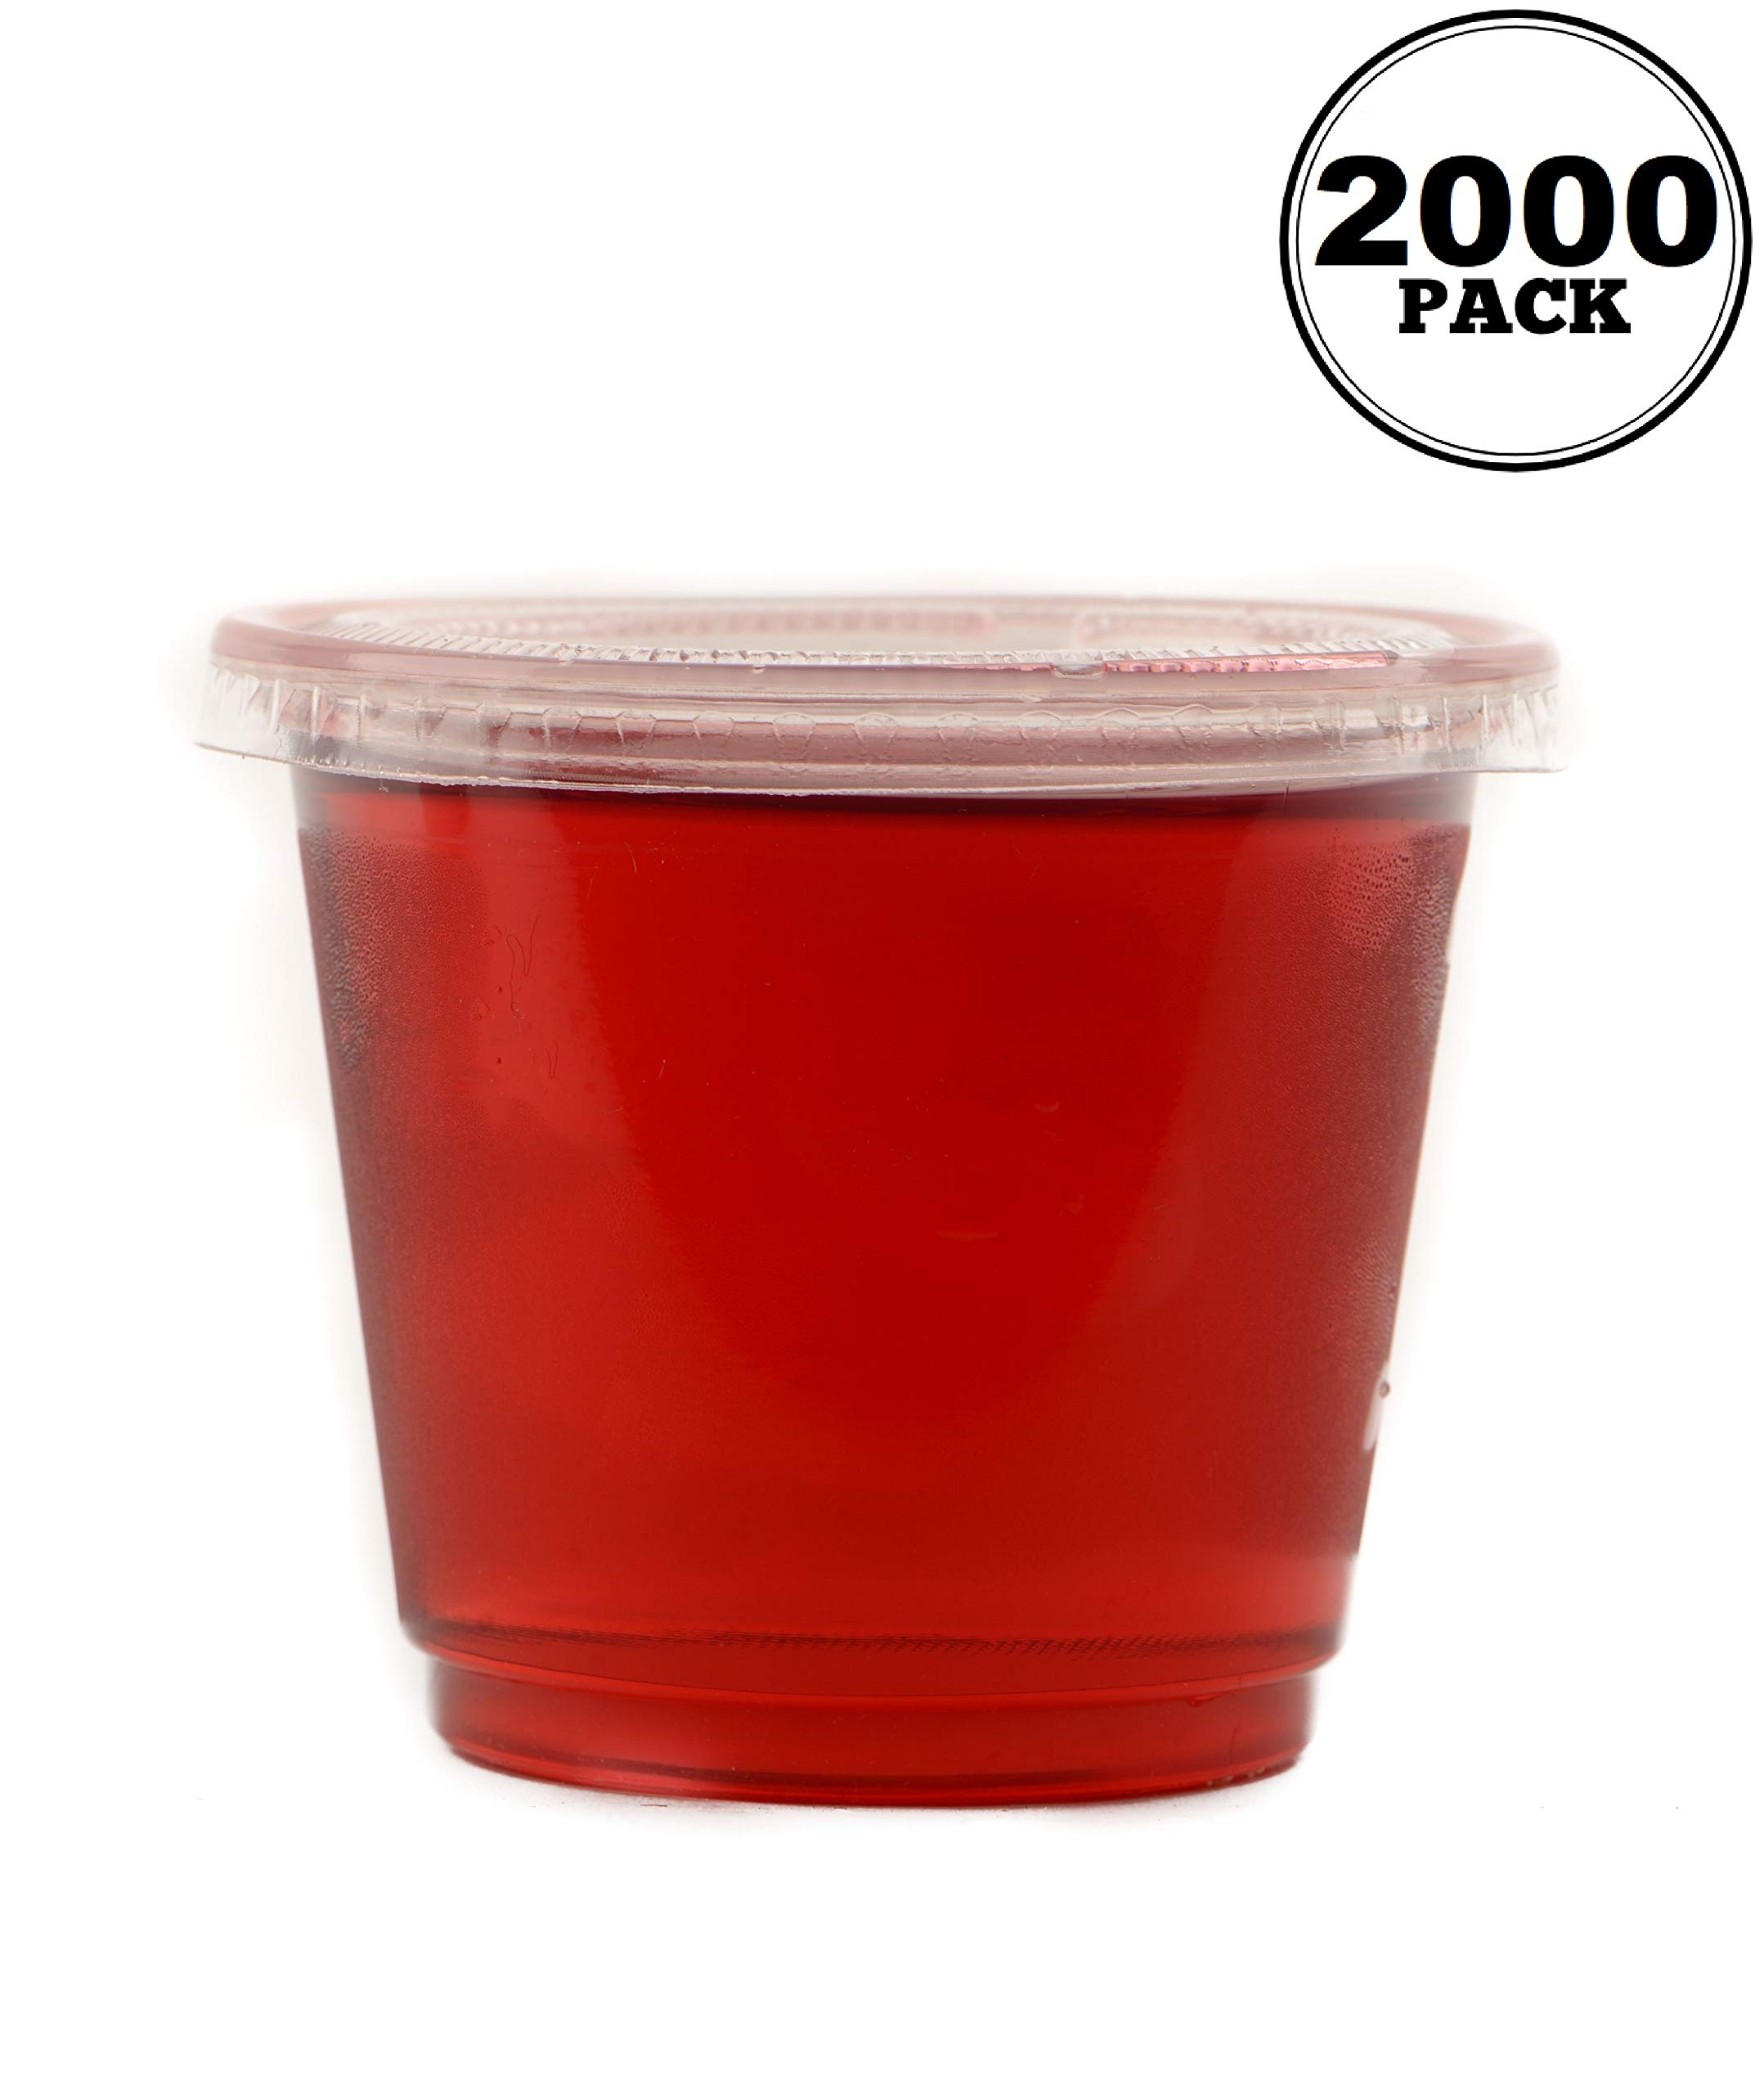 EcoQuality [2000 Pack] 4 Oz Leak Proof Plastic Condiment Souffle Containers with Lids - Plastic Portion Cup with Plastic Lid Perfect for Sauces, Samples, Slime, Jello Shot, Food Storage & More! by EcoQuality